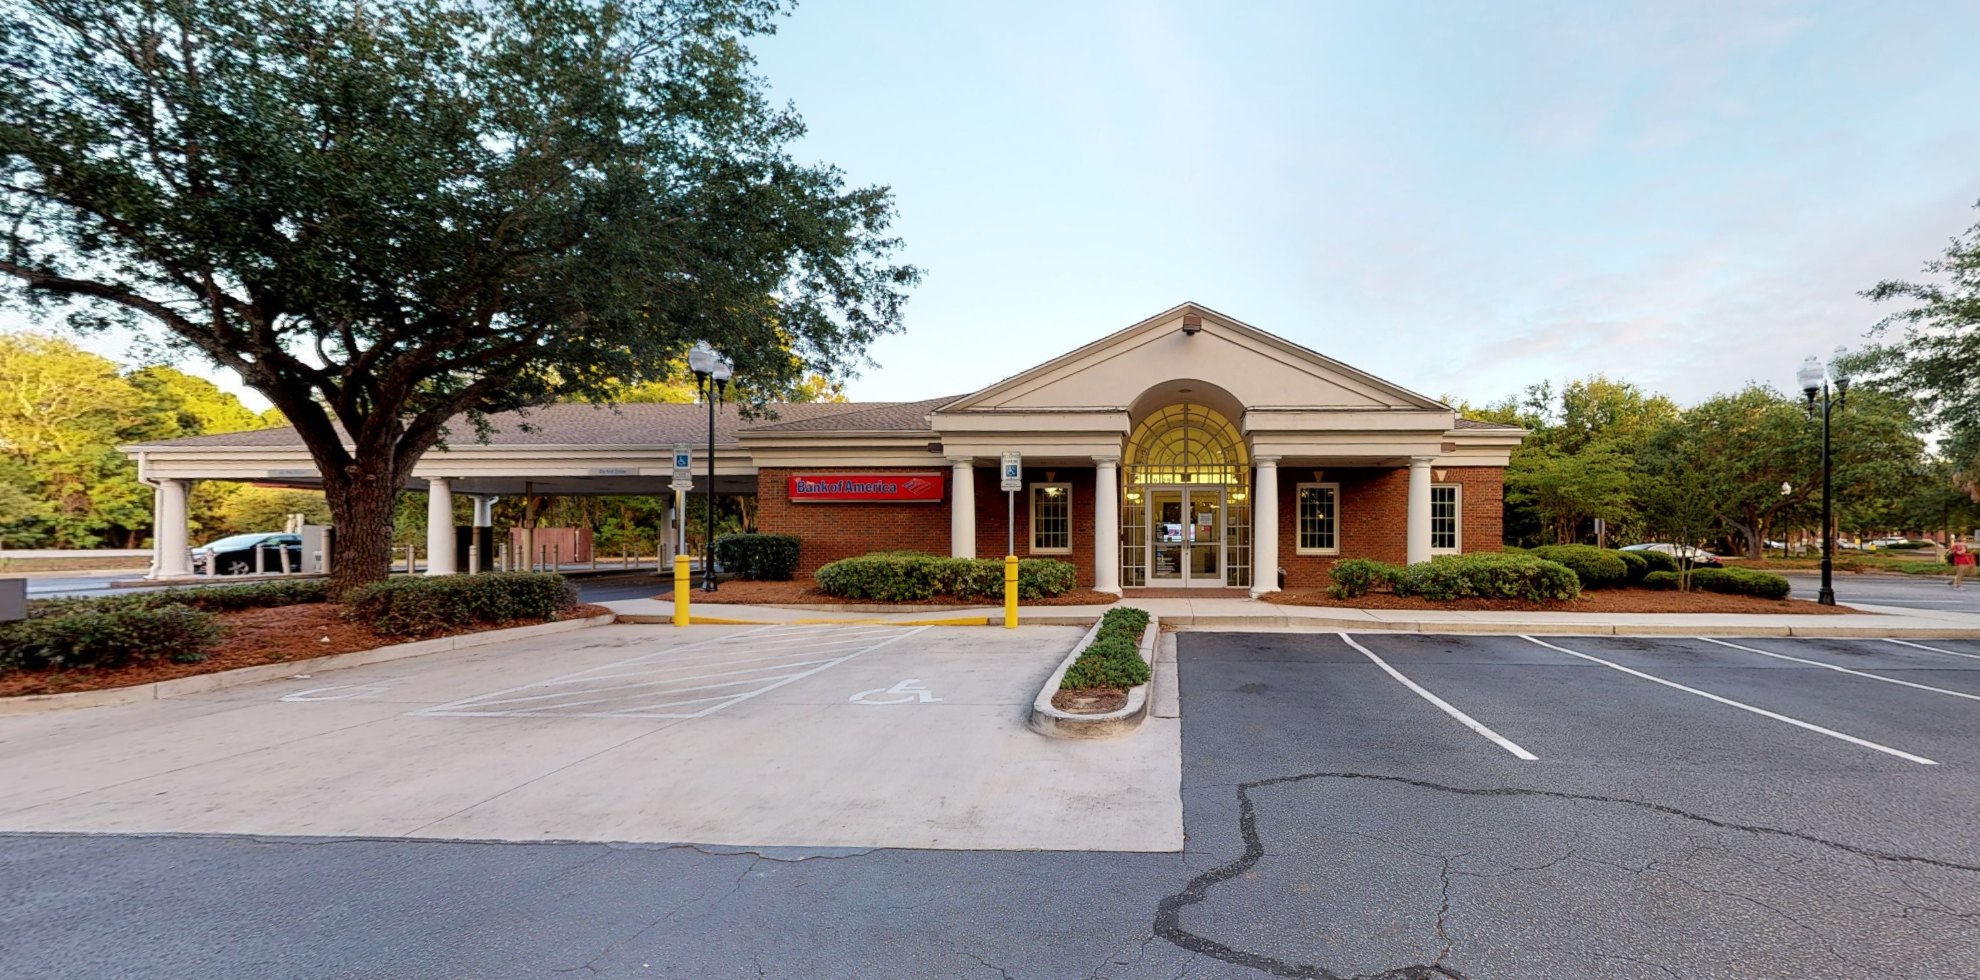 Bank of America financial center with drive-thru ATM and teller   1929 US Highway 17 N, Mount Pleasant, SC 29464